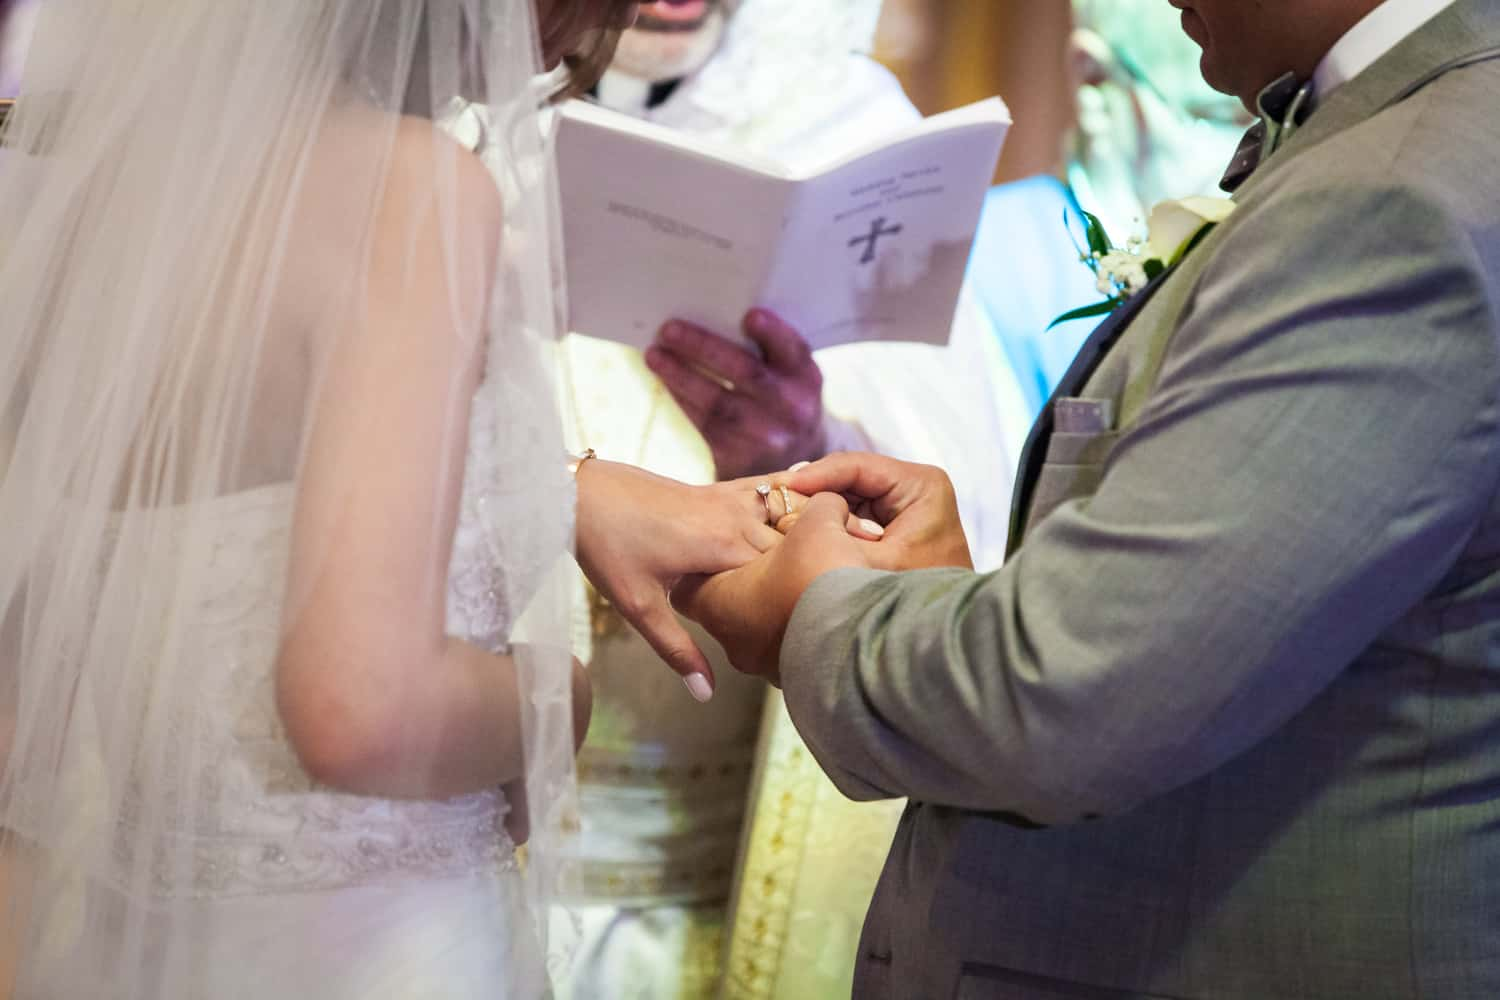 Groom putting ring on bride's finger in Eastern Orthodox wedding ceremony